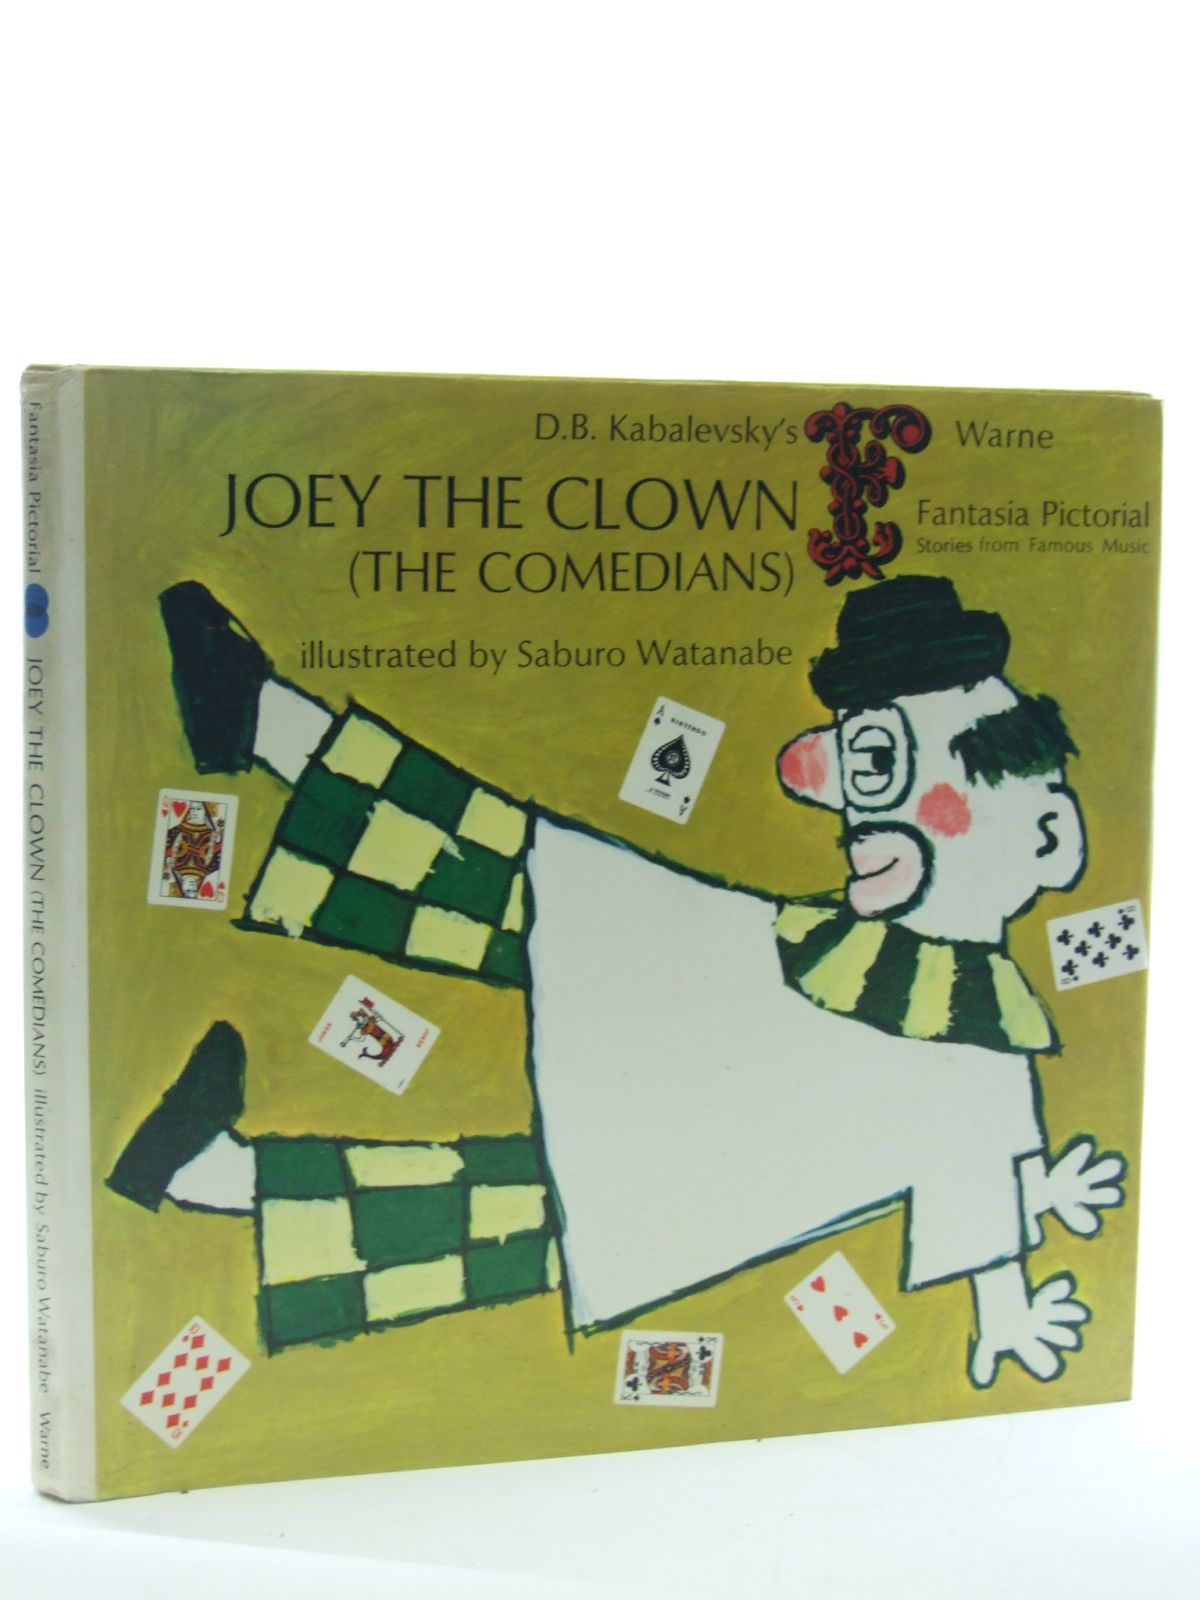 Photo of D.B. KABALEVSKY'S JOEY THE CLOWN (THE COMEDIANS) written by Tsutsui, Keisuke Herring, Ann King illustrated by Watanabe, Saburo published by Frederick Warne (STOCK CODE: 1107035)  for sale by Stella & Rose's Books